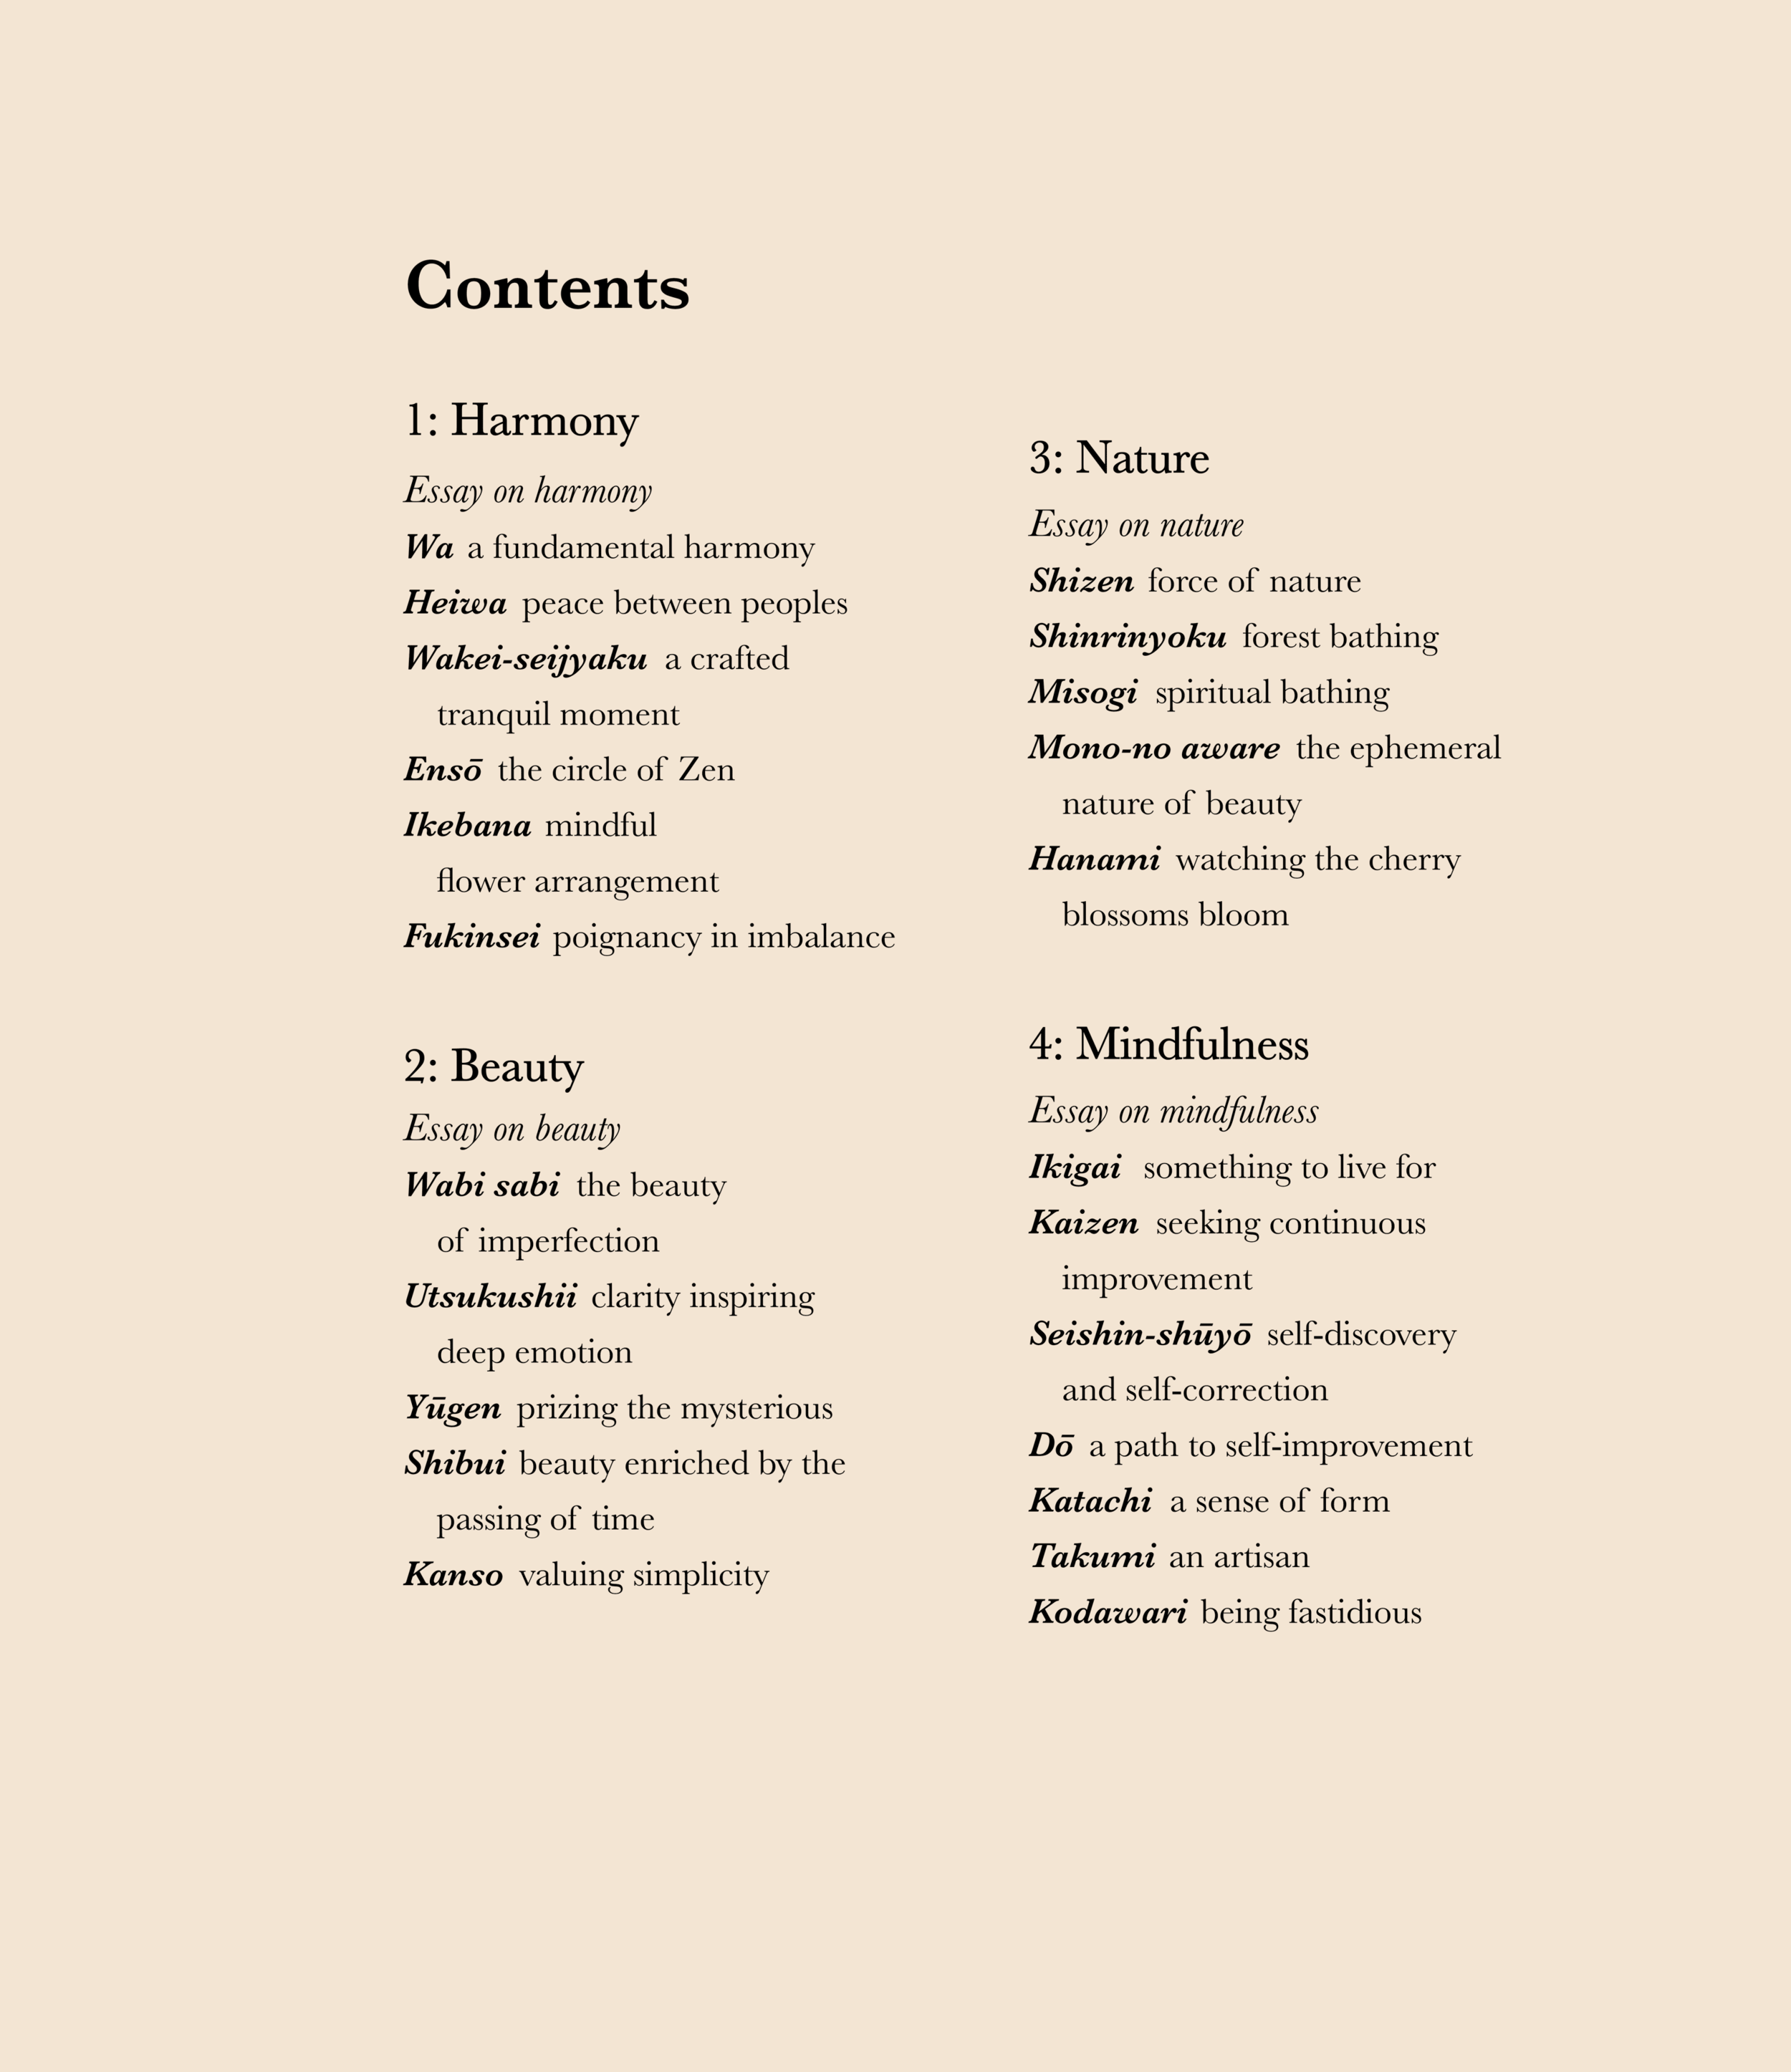 Ikigai-contents-6-7.png